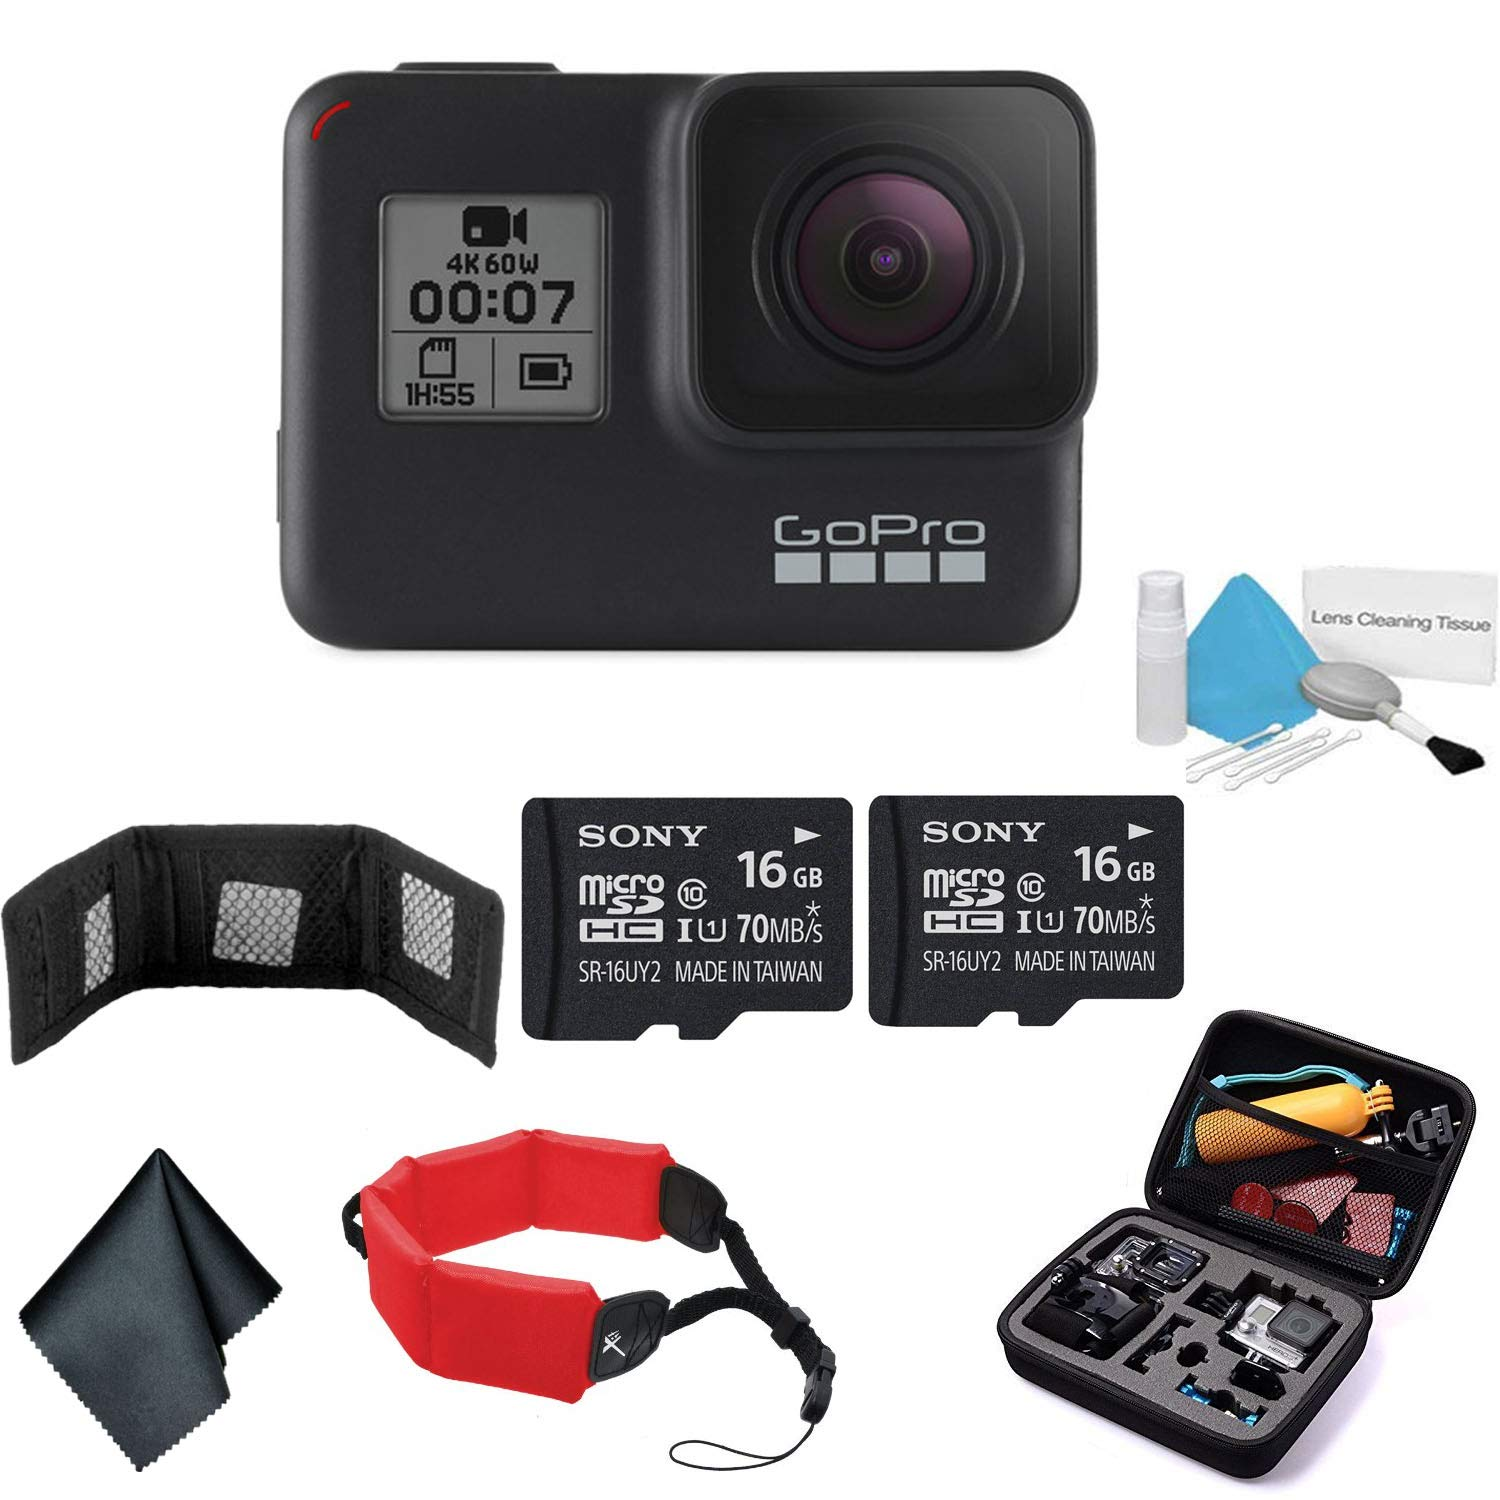 GoPro HERO7 (Black) ? Waterproof Digital Action Camera with Touch Screen 4K HD Video 12MP Photos Live Streaming Stabilization - Bundle with 2X 16GB Memory Cards + Floating Strap + More